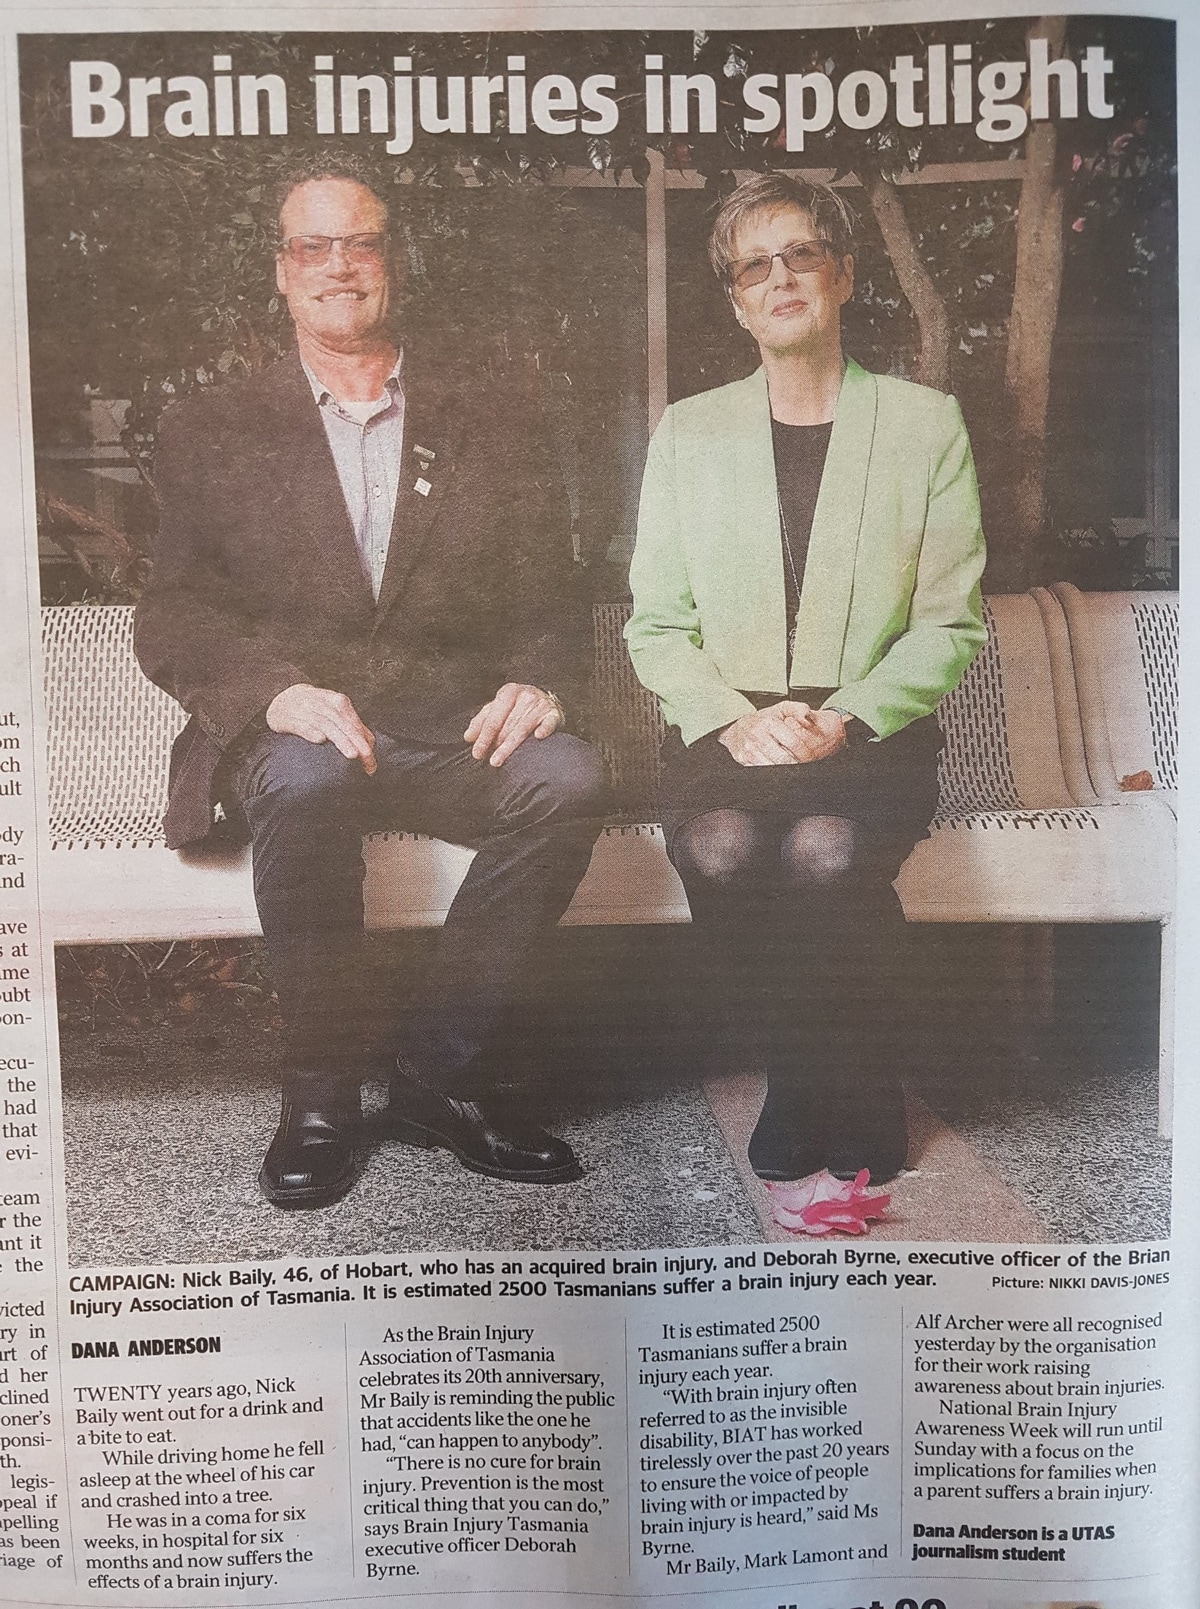 Newspaper image of Nick and Deb sitting